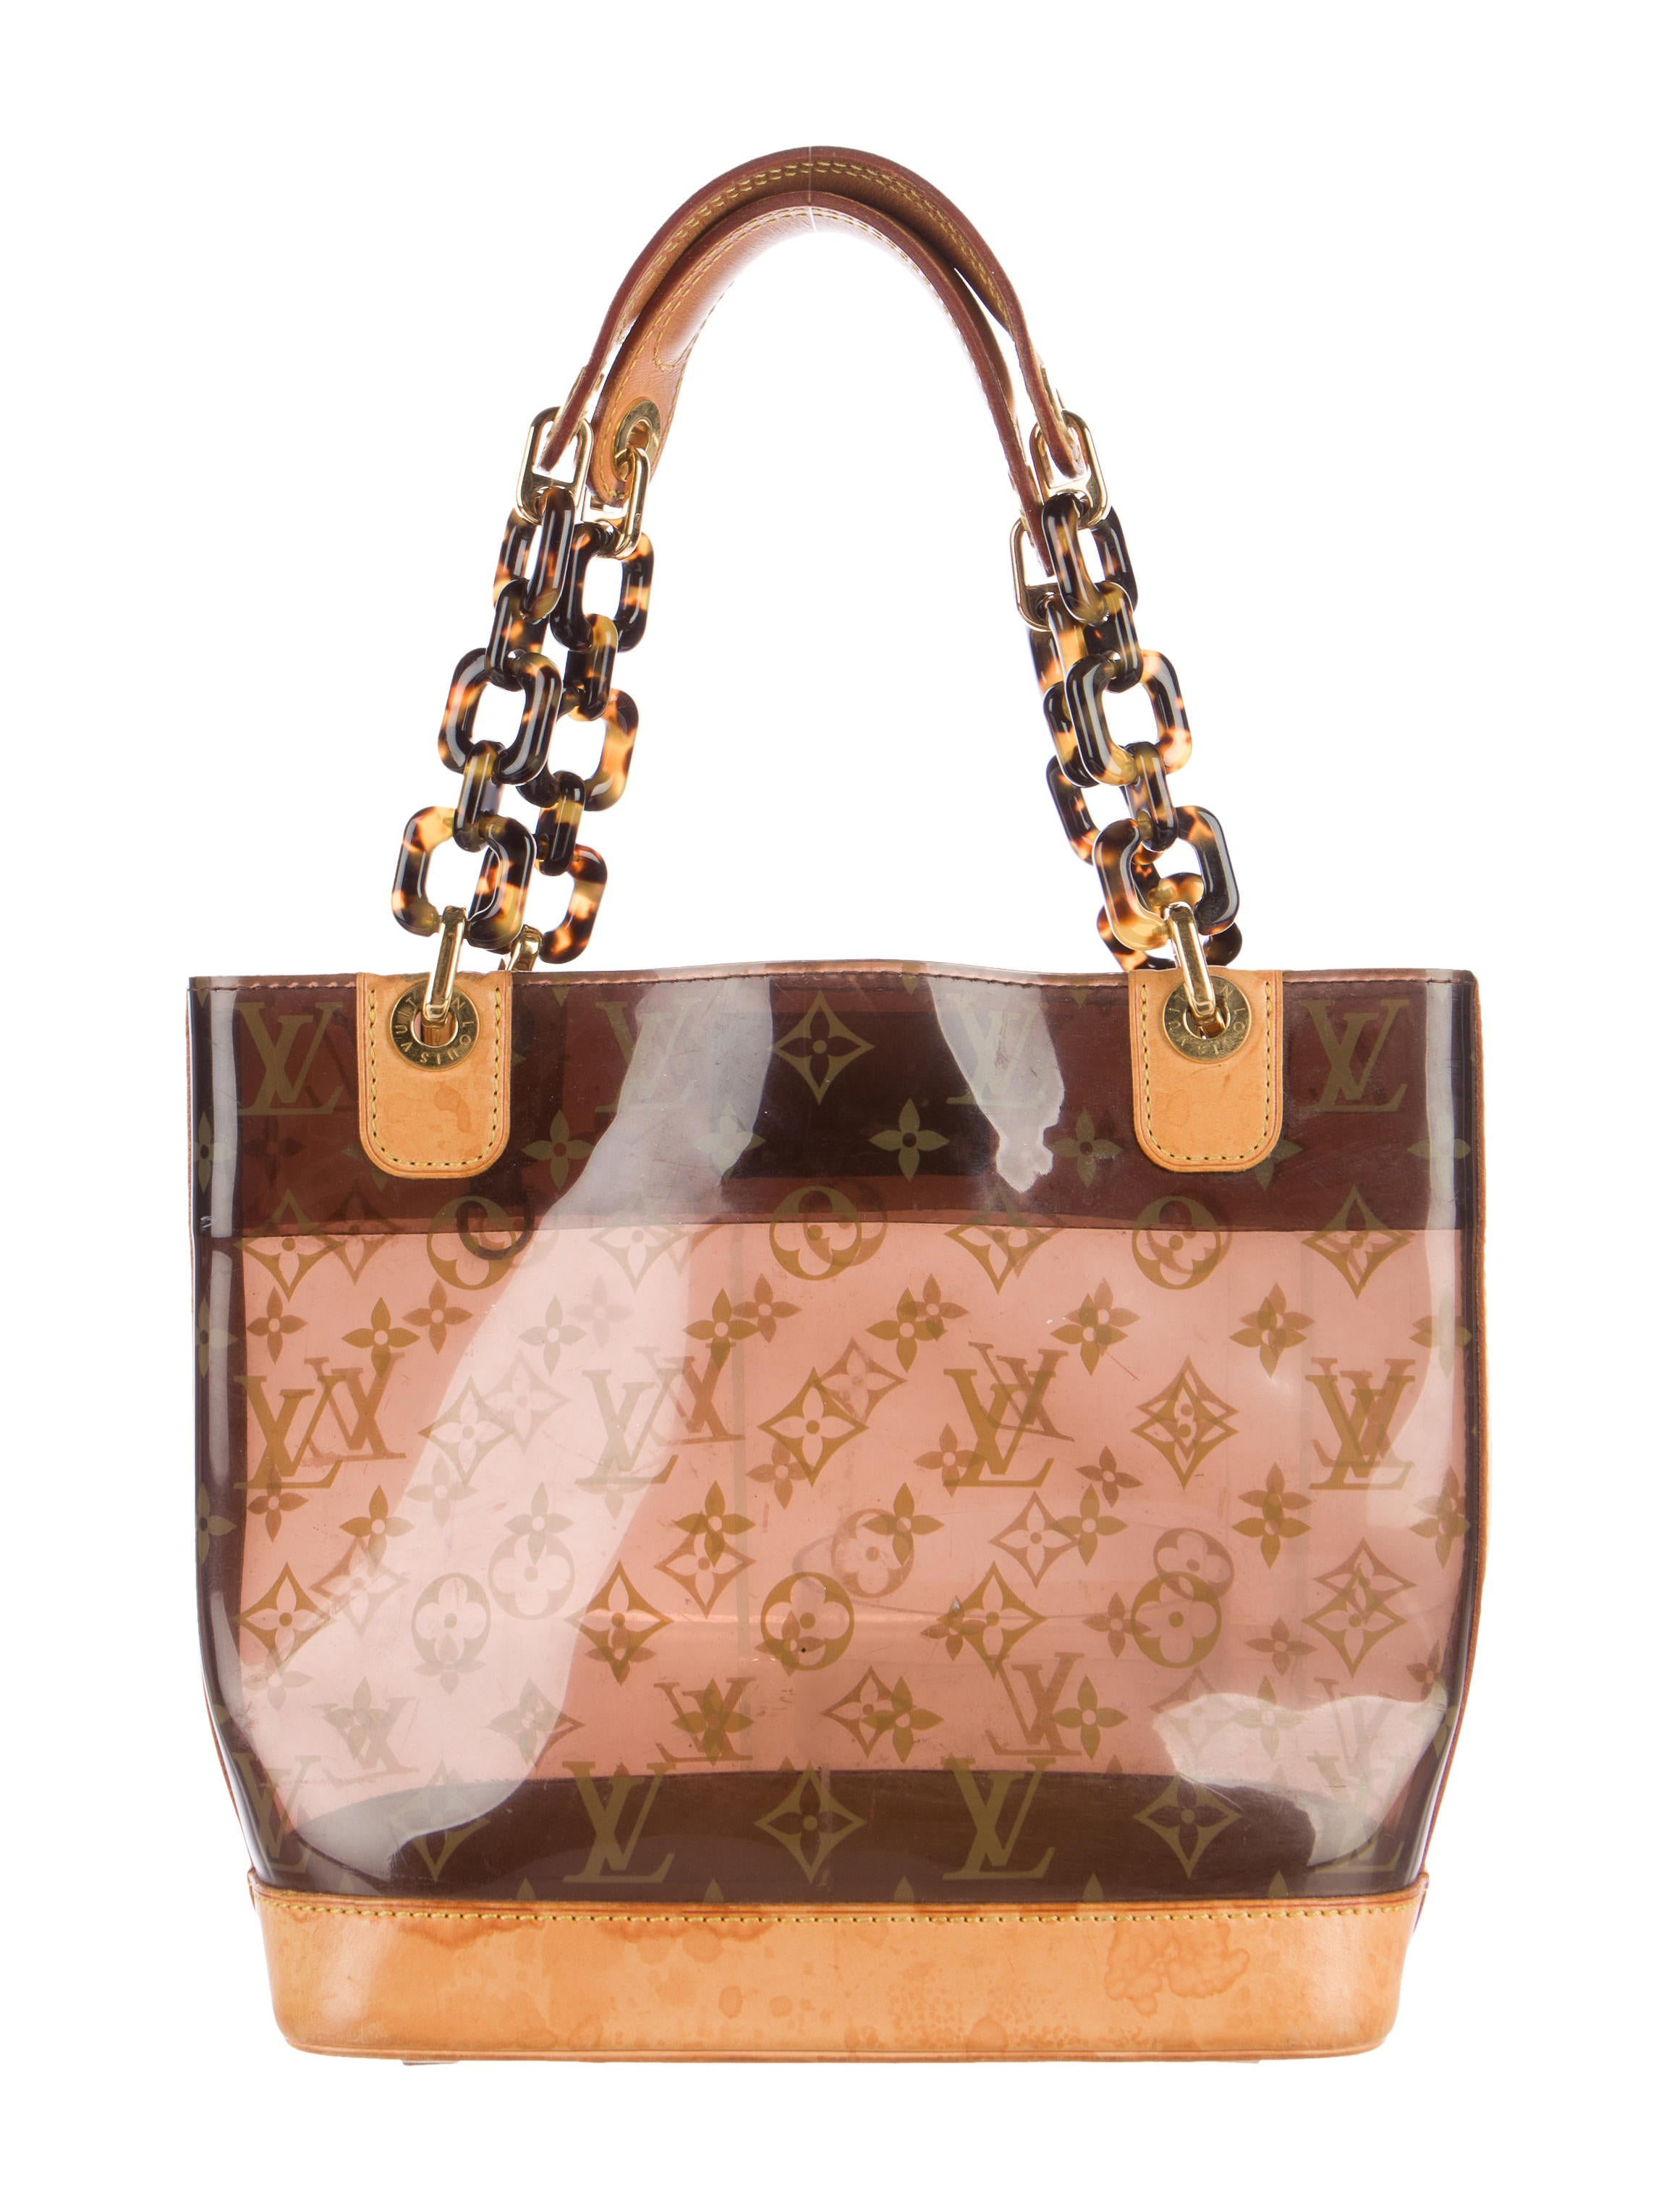 Sac Louis Vuitton Cabas Occasion : Louis vuitton cabas sac ambre pm handbags lou